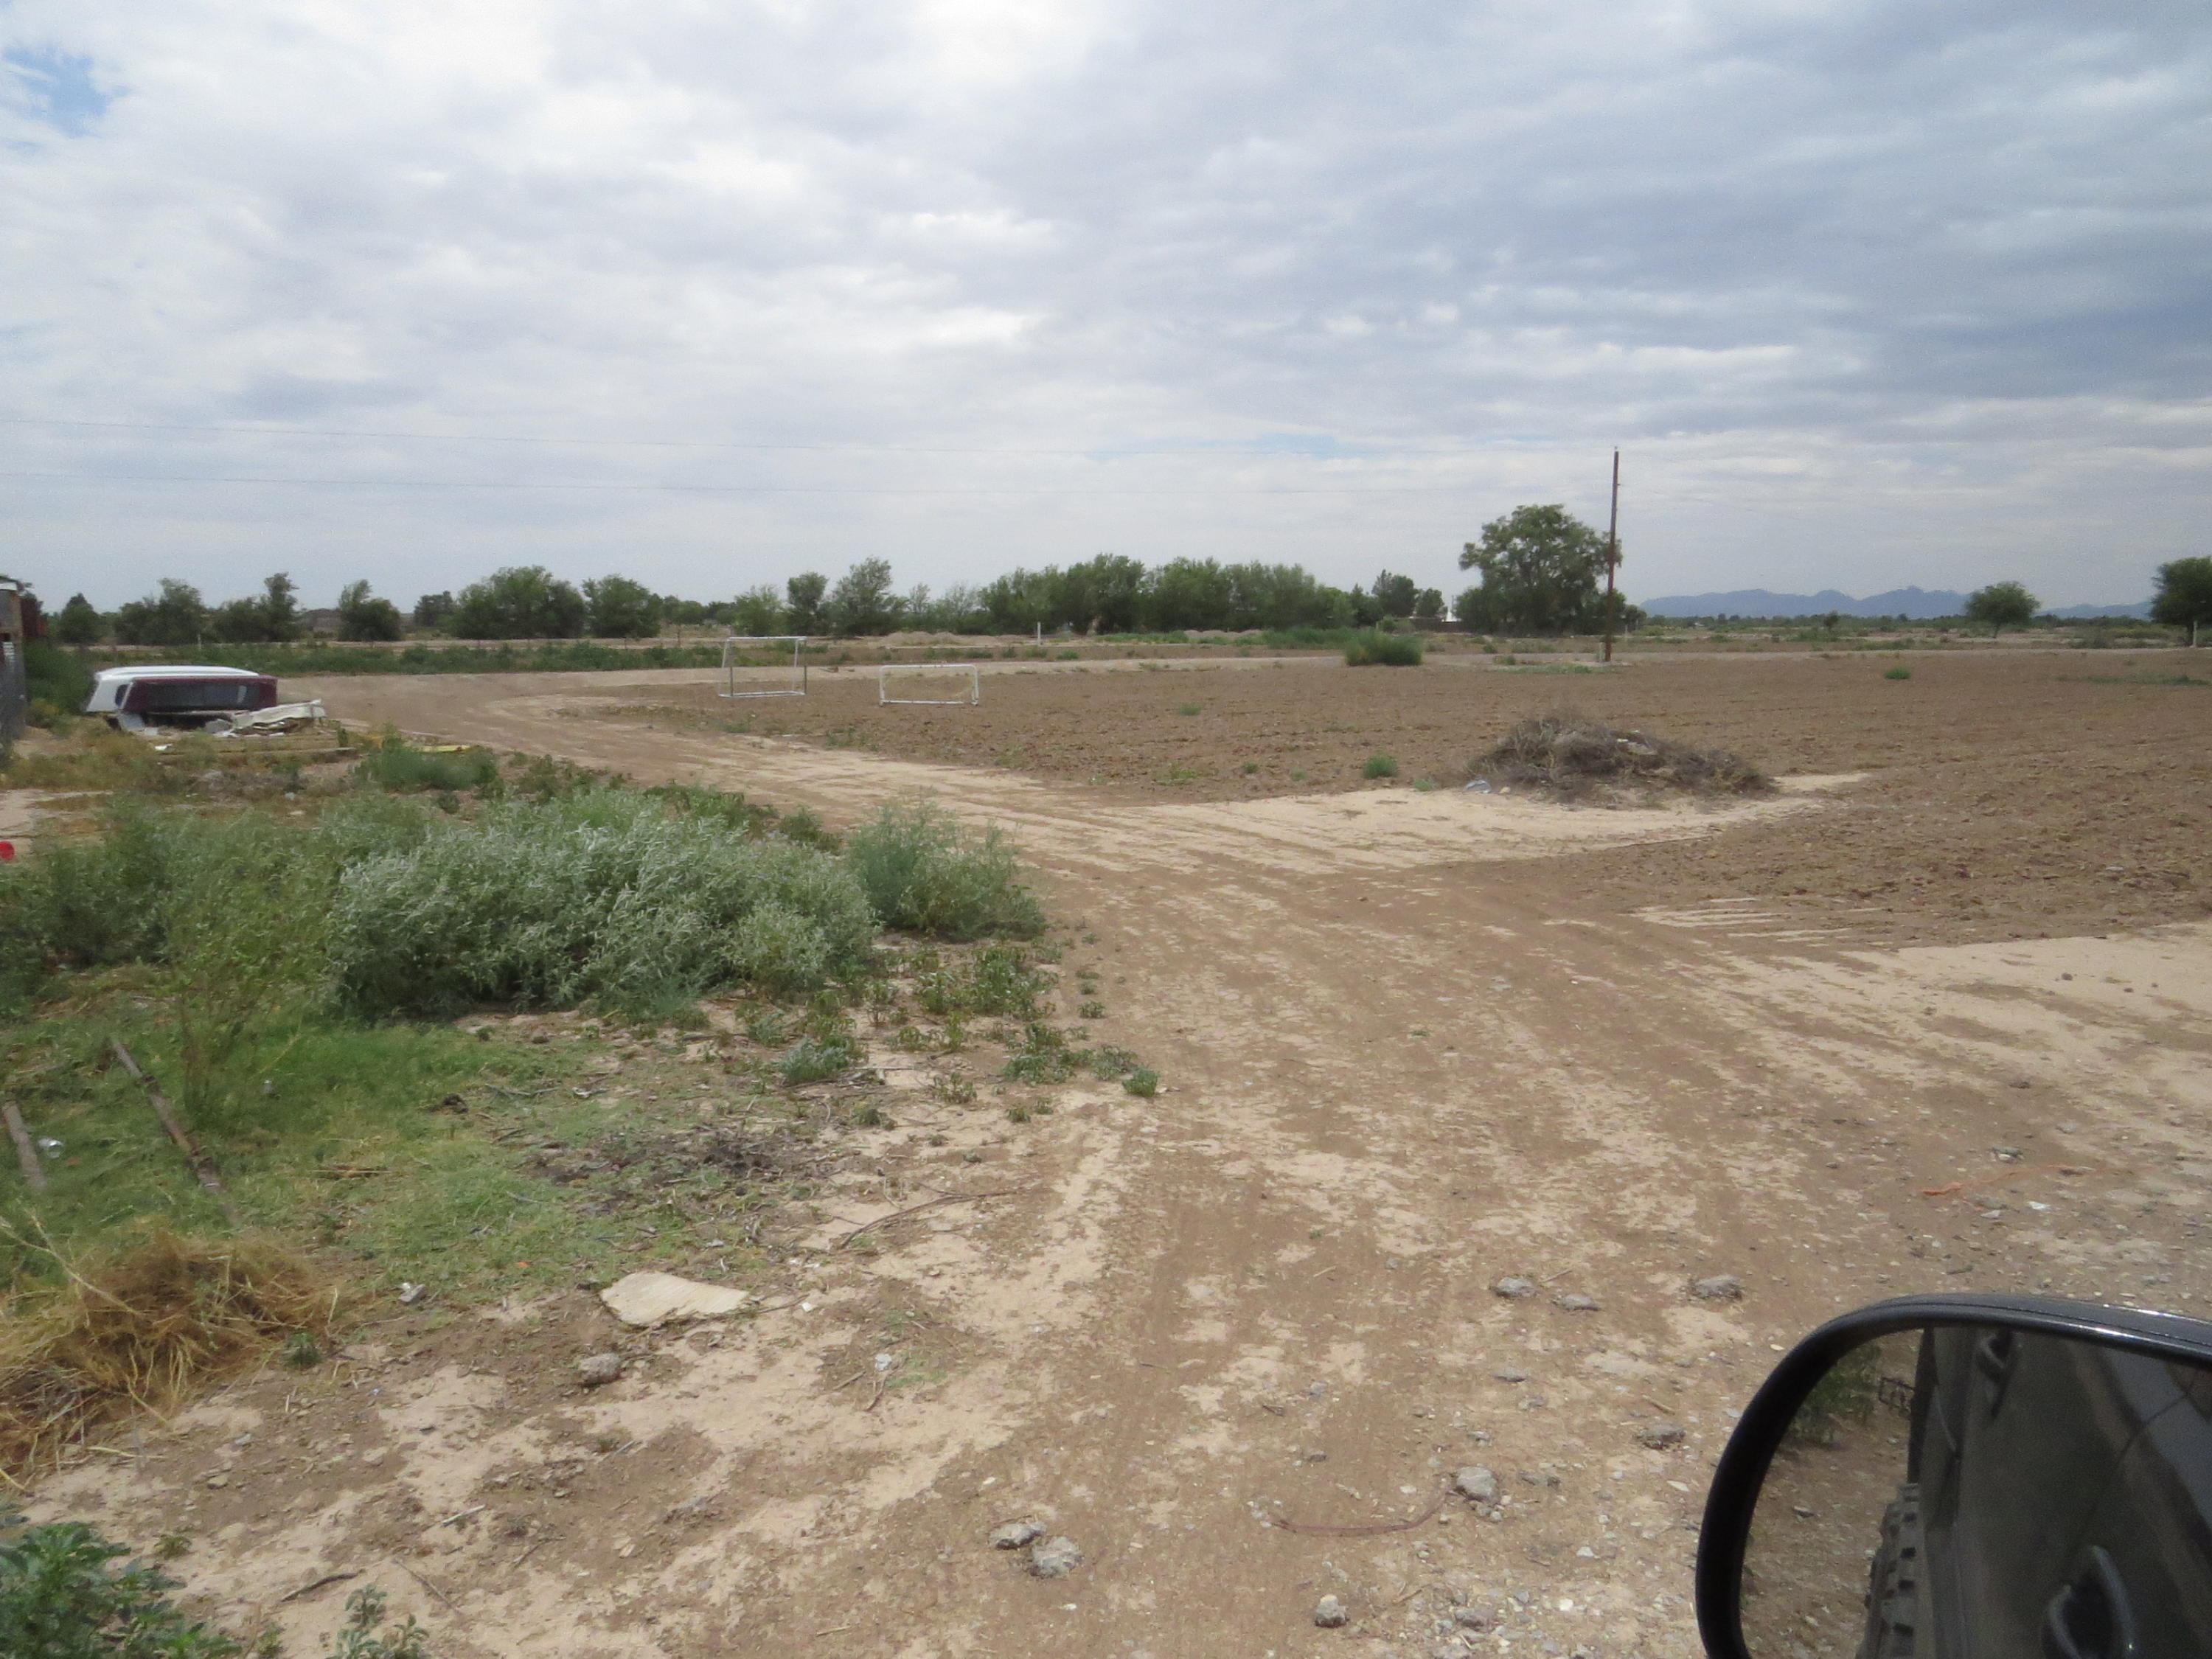 TBD TBD, San Elizario, Texas 79849, ,Land,For sale,TBD,813894